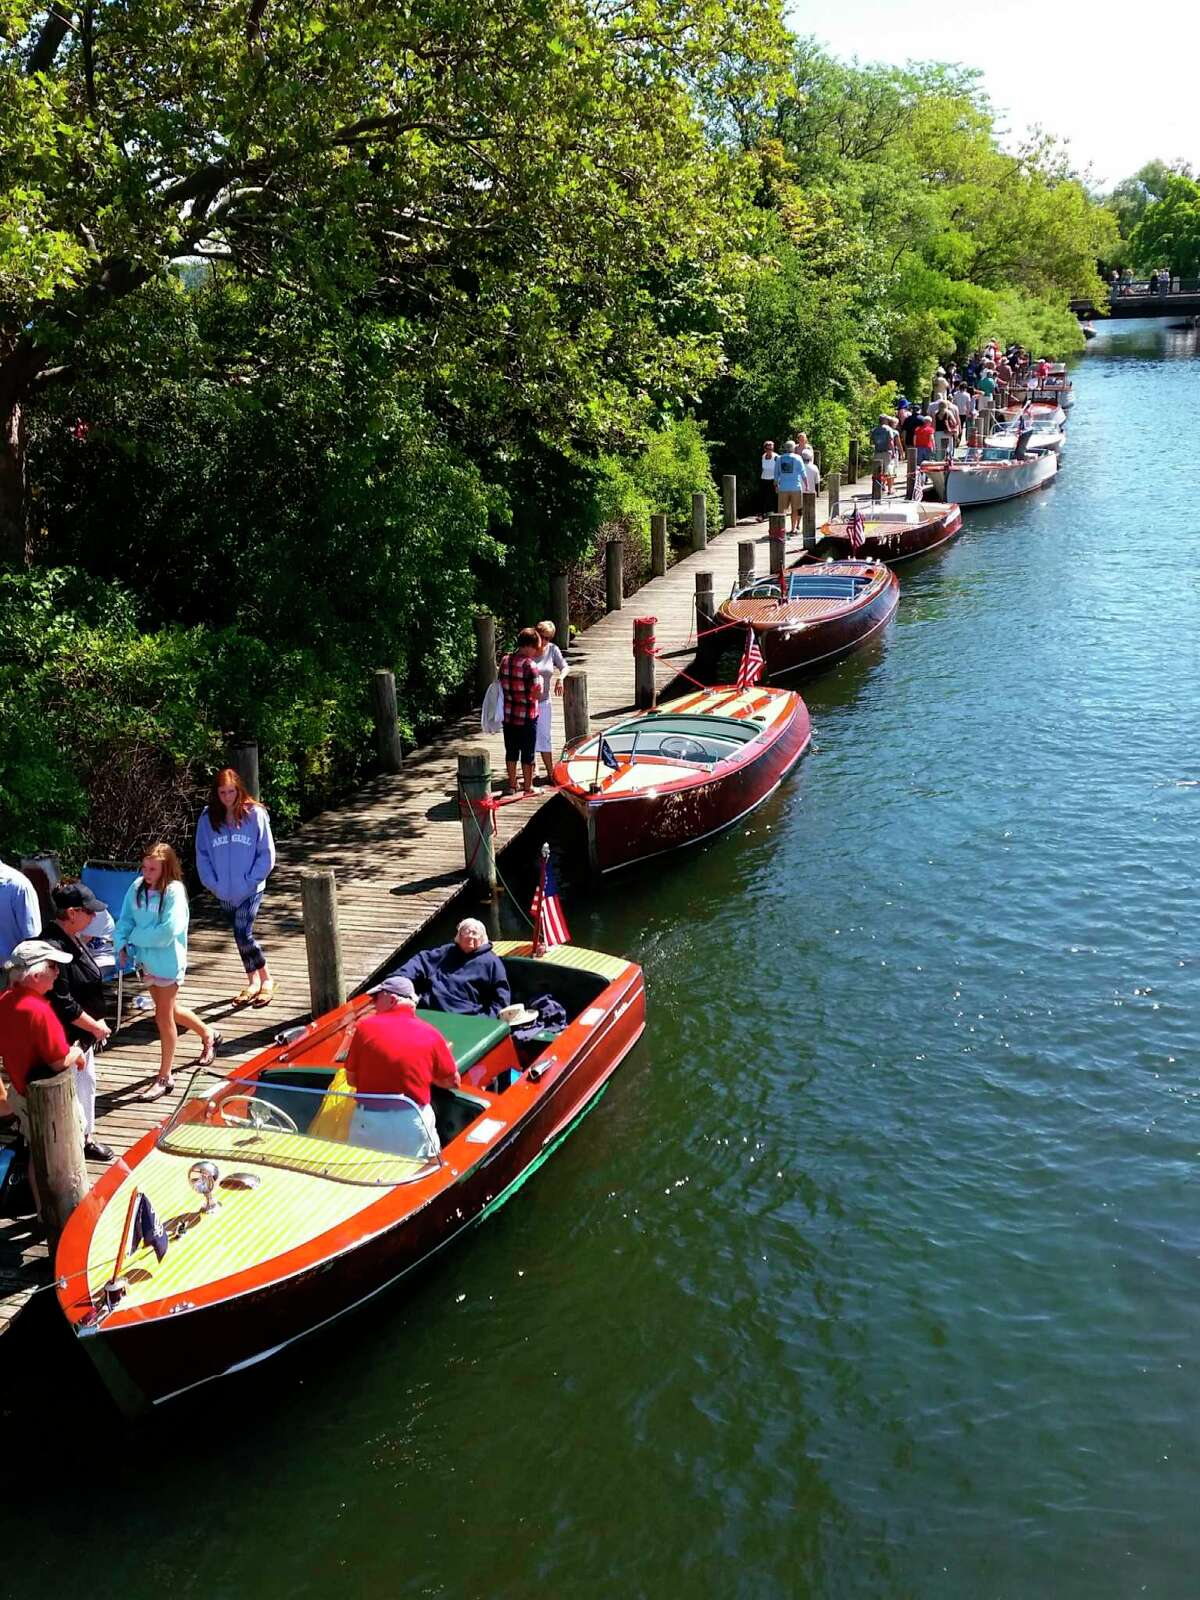 New and vintage boats will be on display at the 33rd annual Boats on the Boardwalk in downtown Traverse City on Aug 7. (Submitted photo)